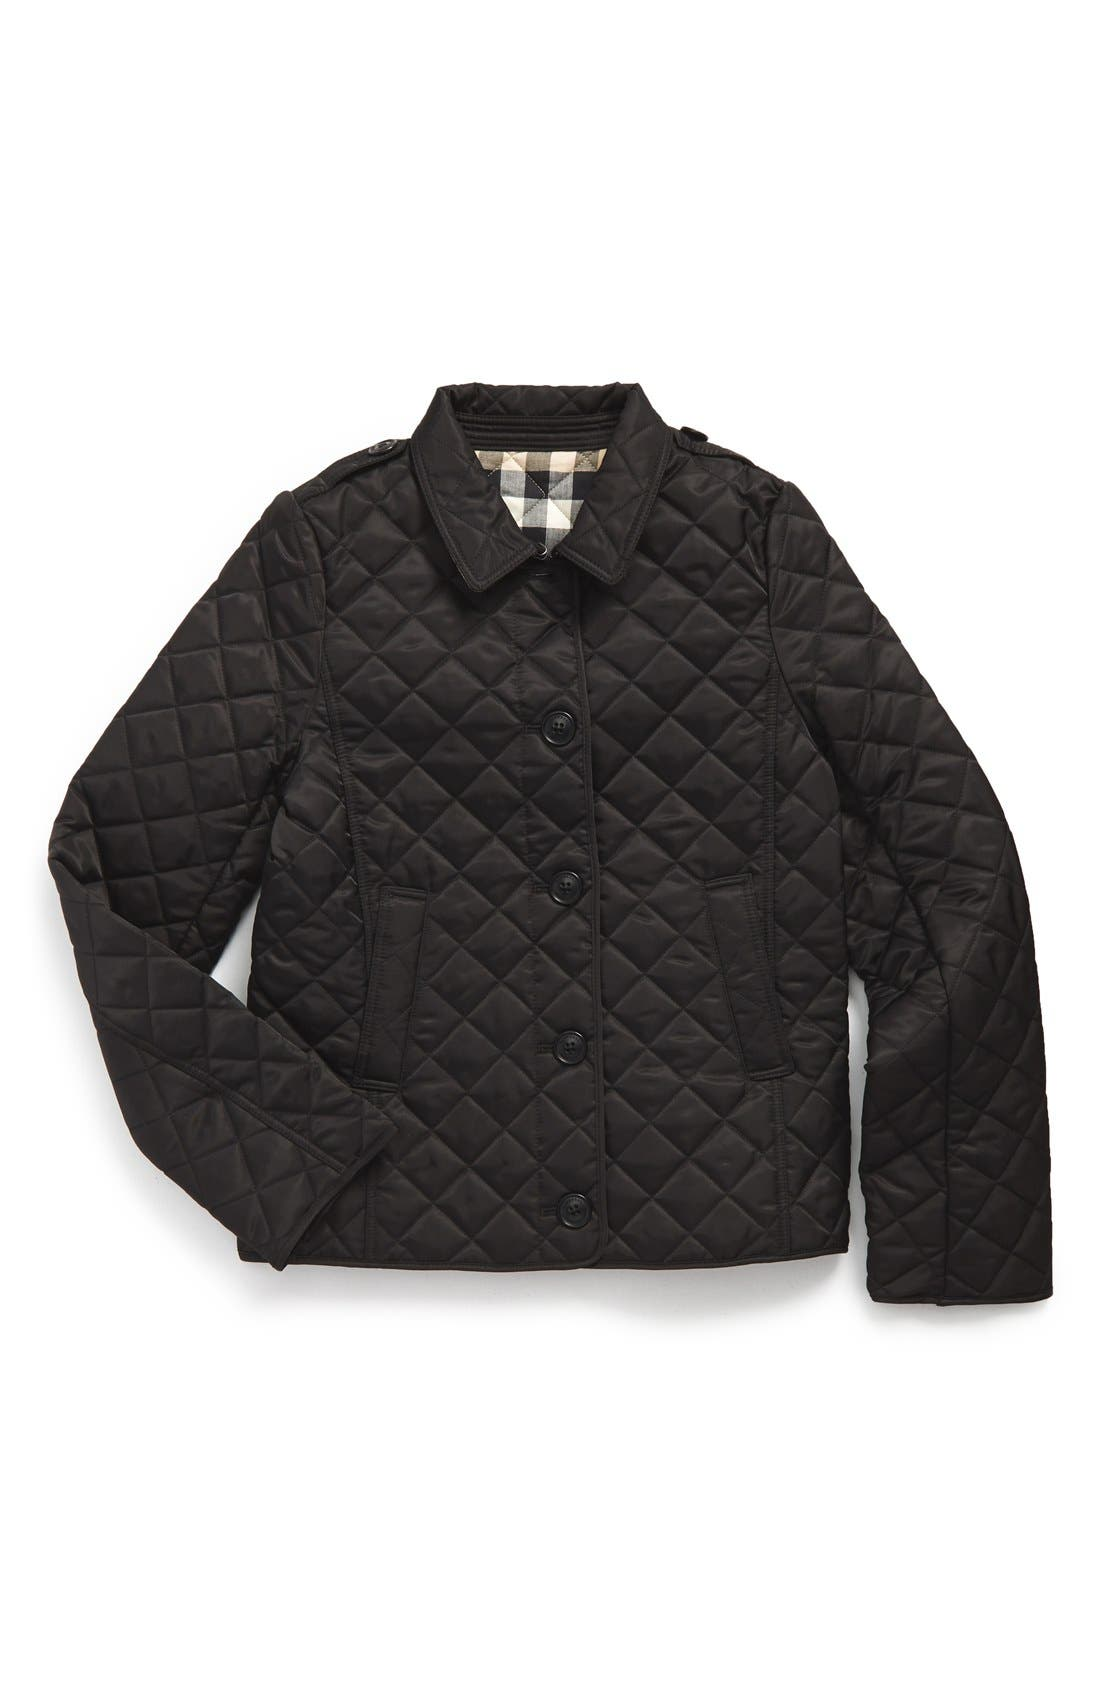 'Mini Ashurst' Quilted Jacket,                             Main thumbnail 1, color,                             001